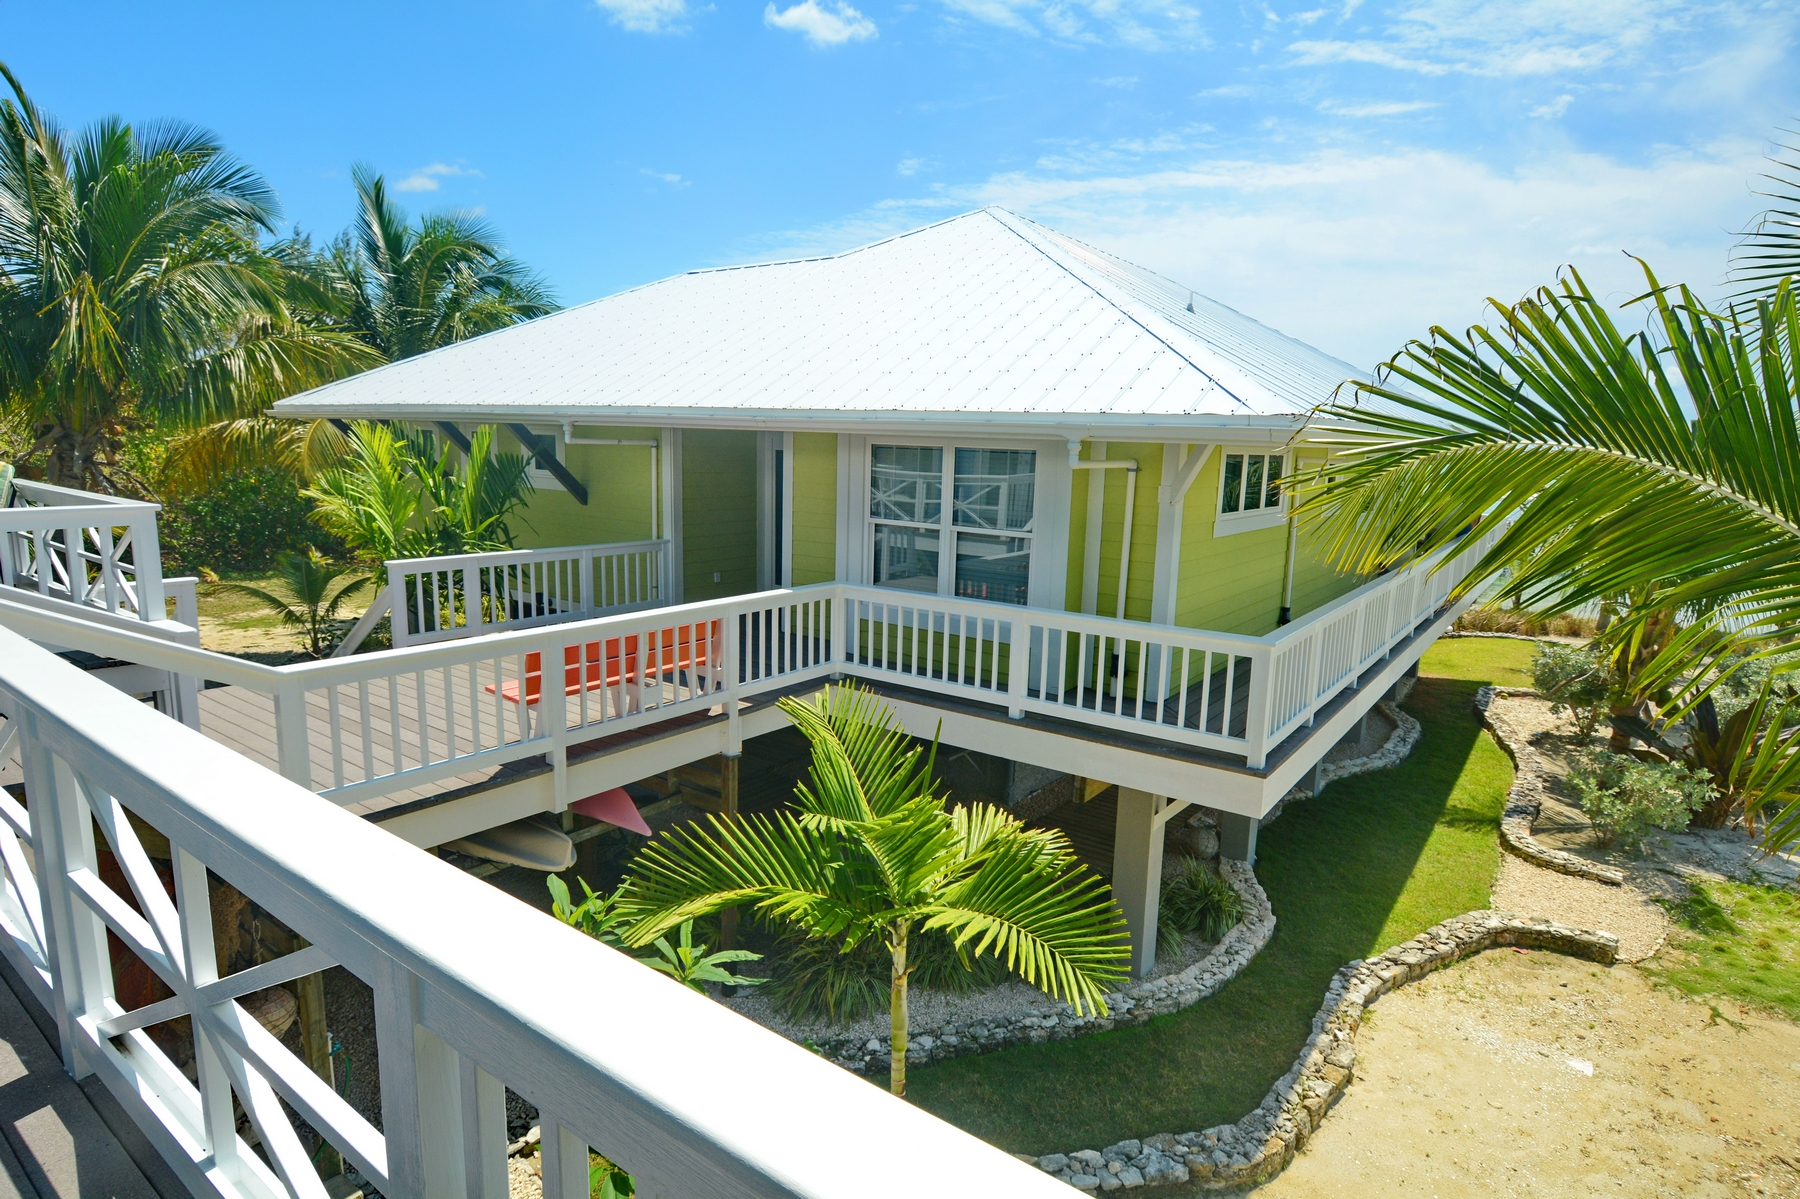 Additional photo for property listing at Sea Biscuit Abaco Ocean Club, Lubbers Quarters, Abaco Bahamas